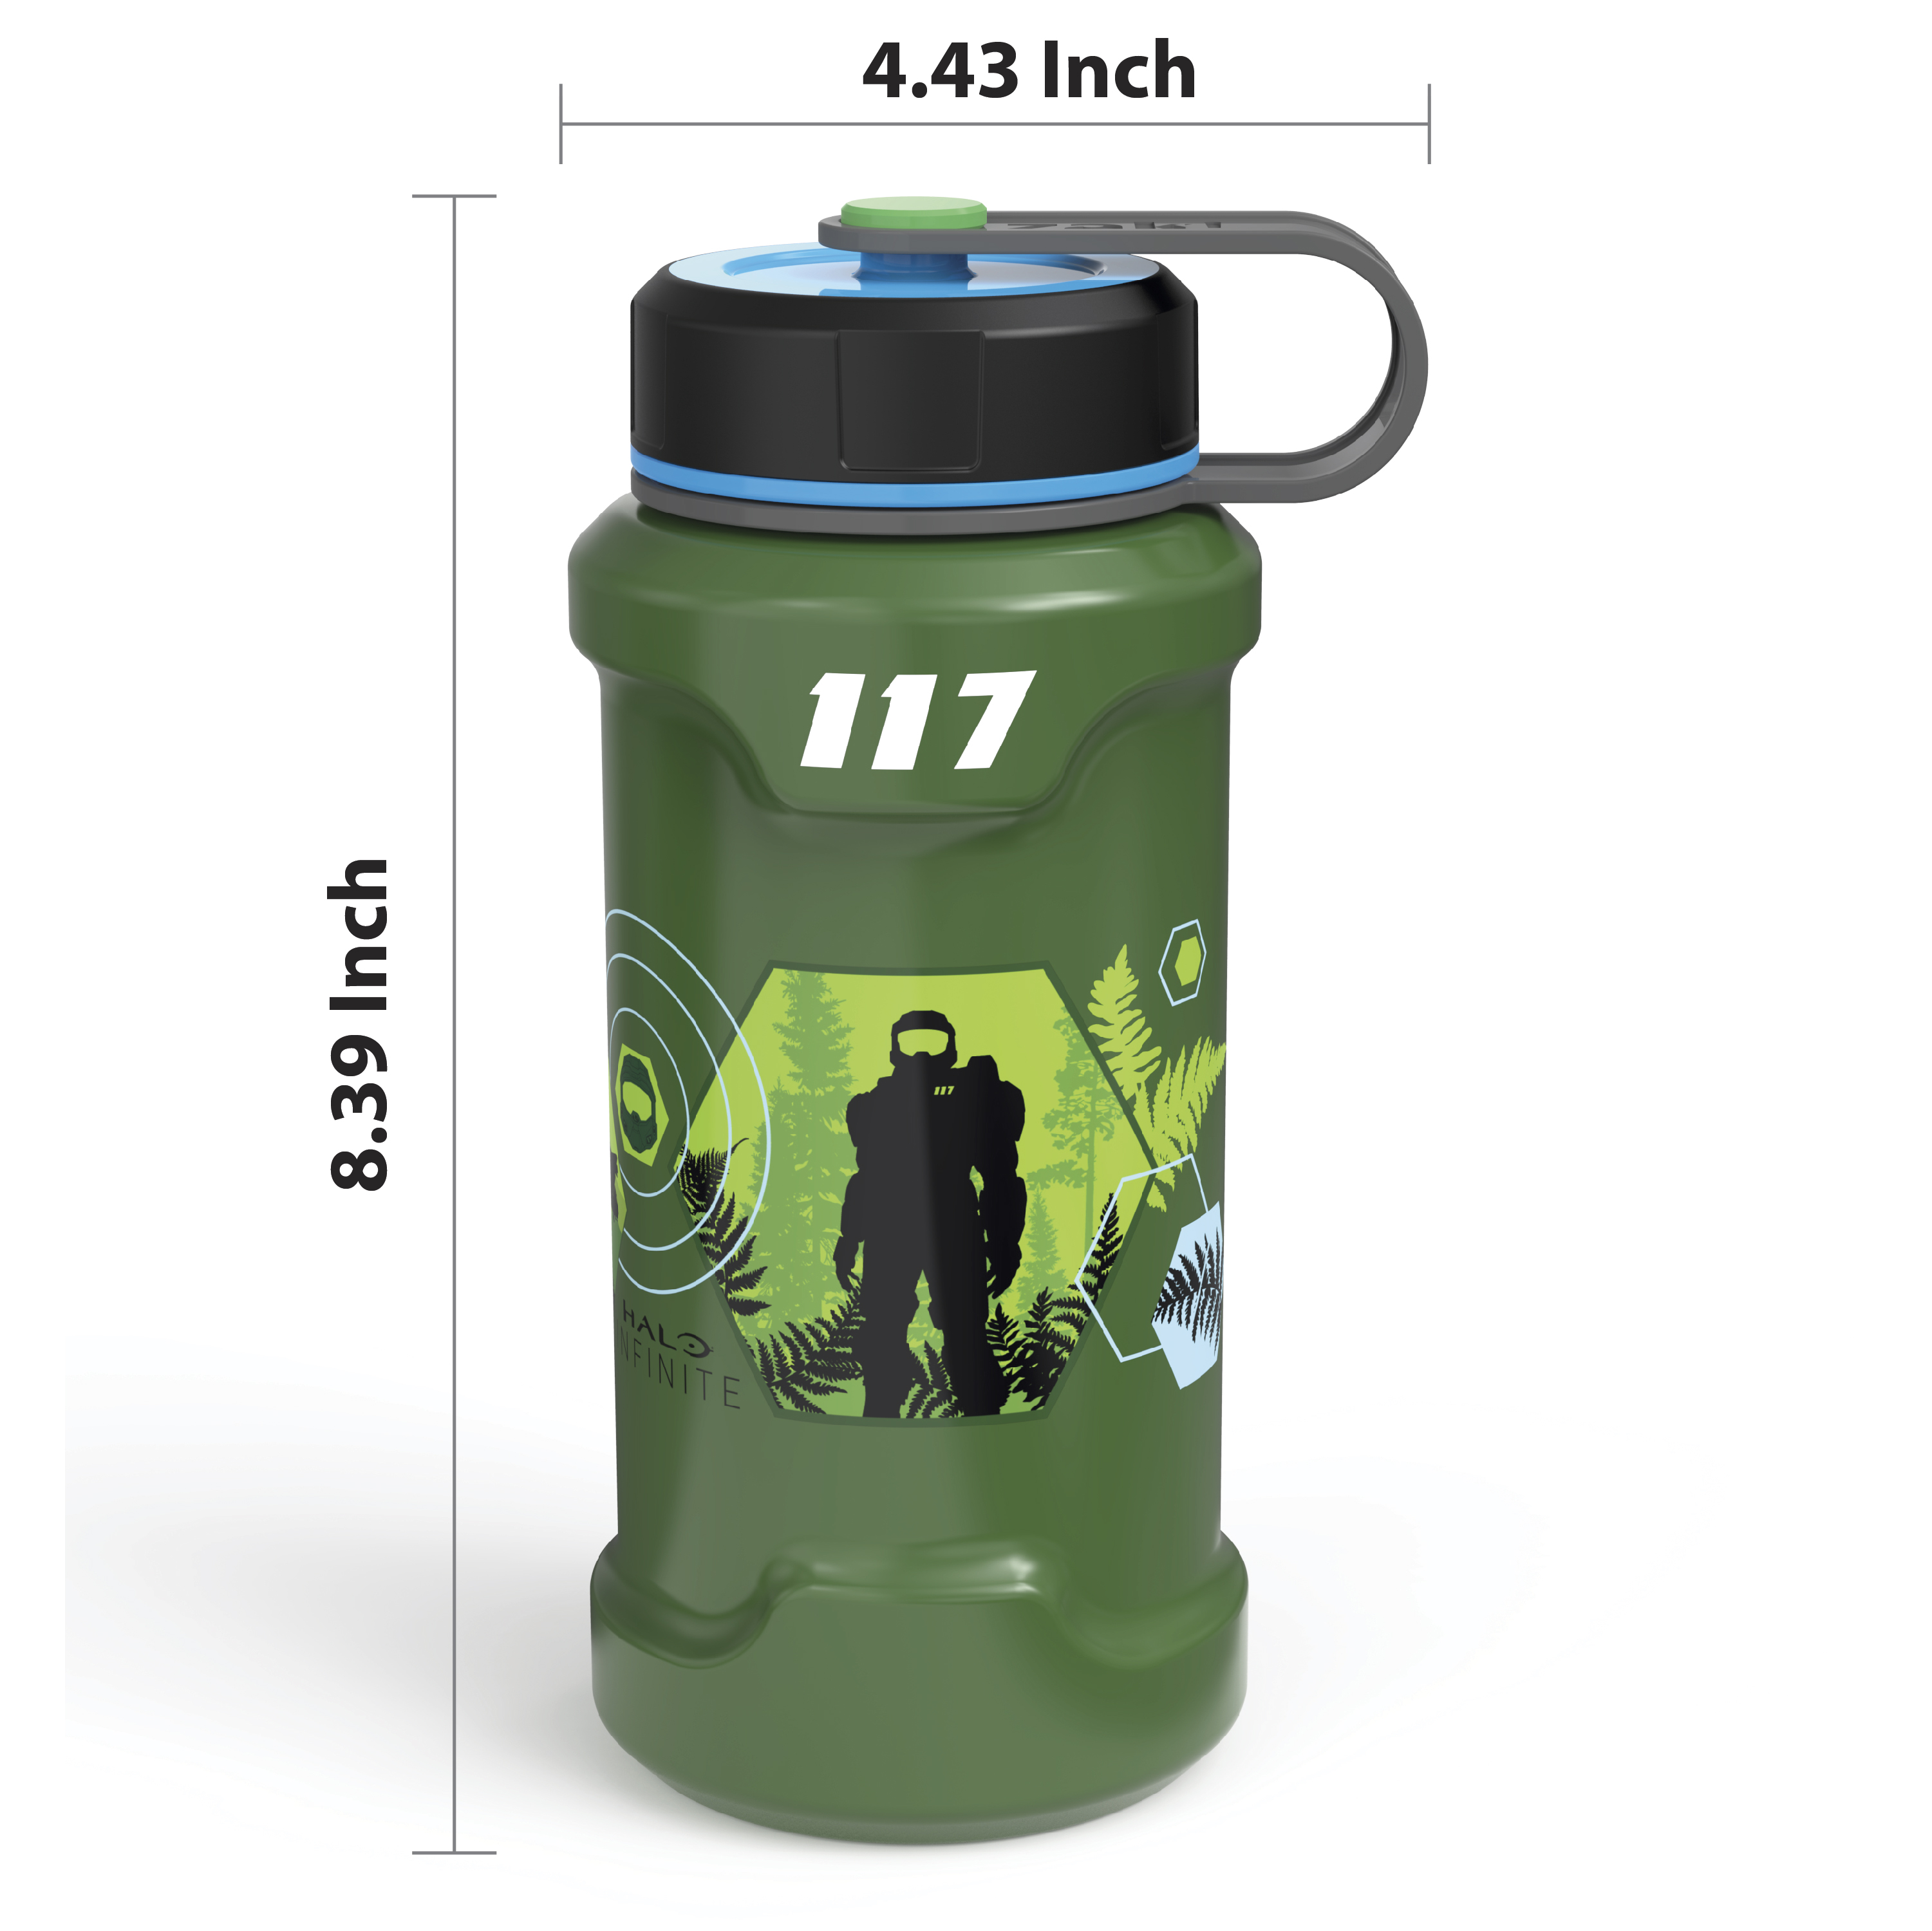 XBOX 24 ounce Stainless Steel Insulated Water Bottle, Halo slideshow image 7